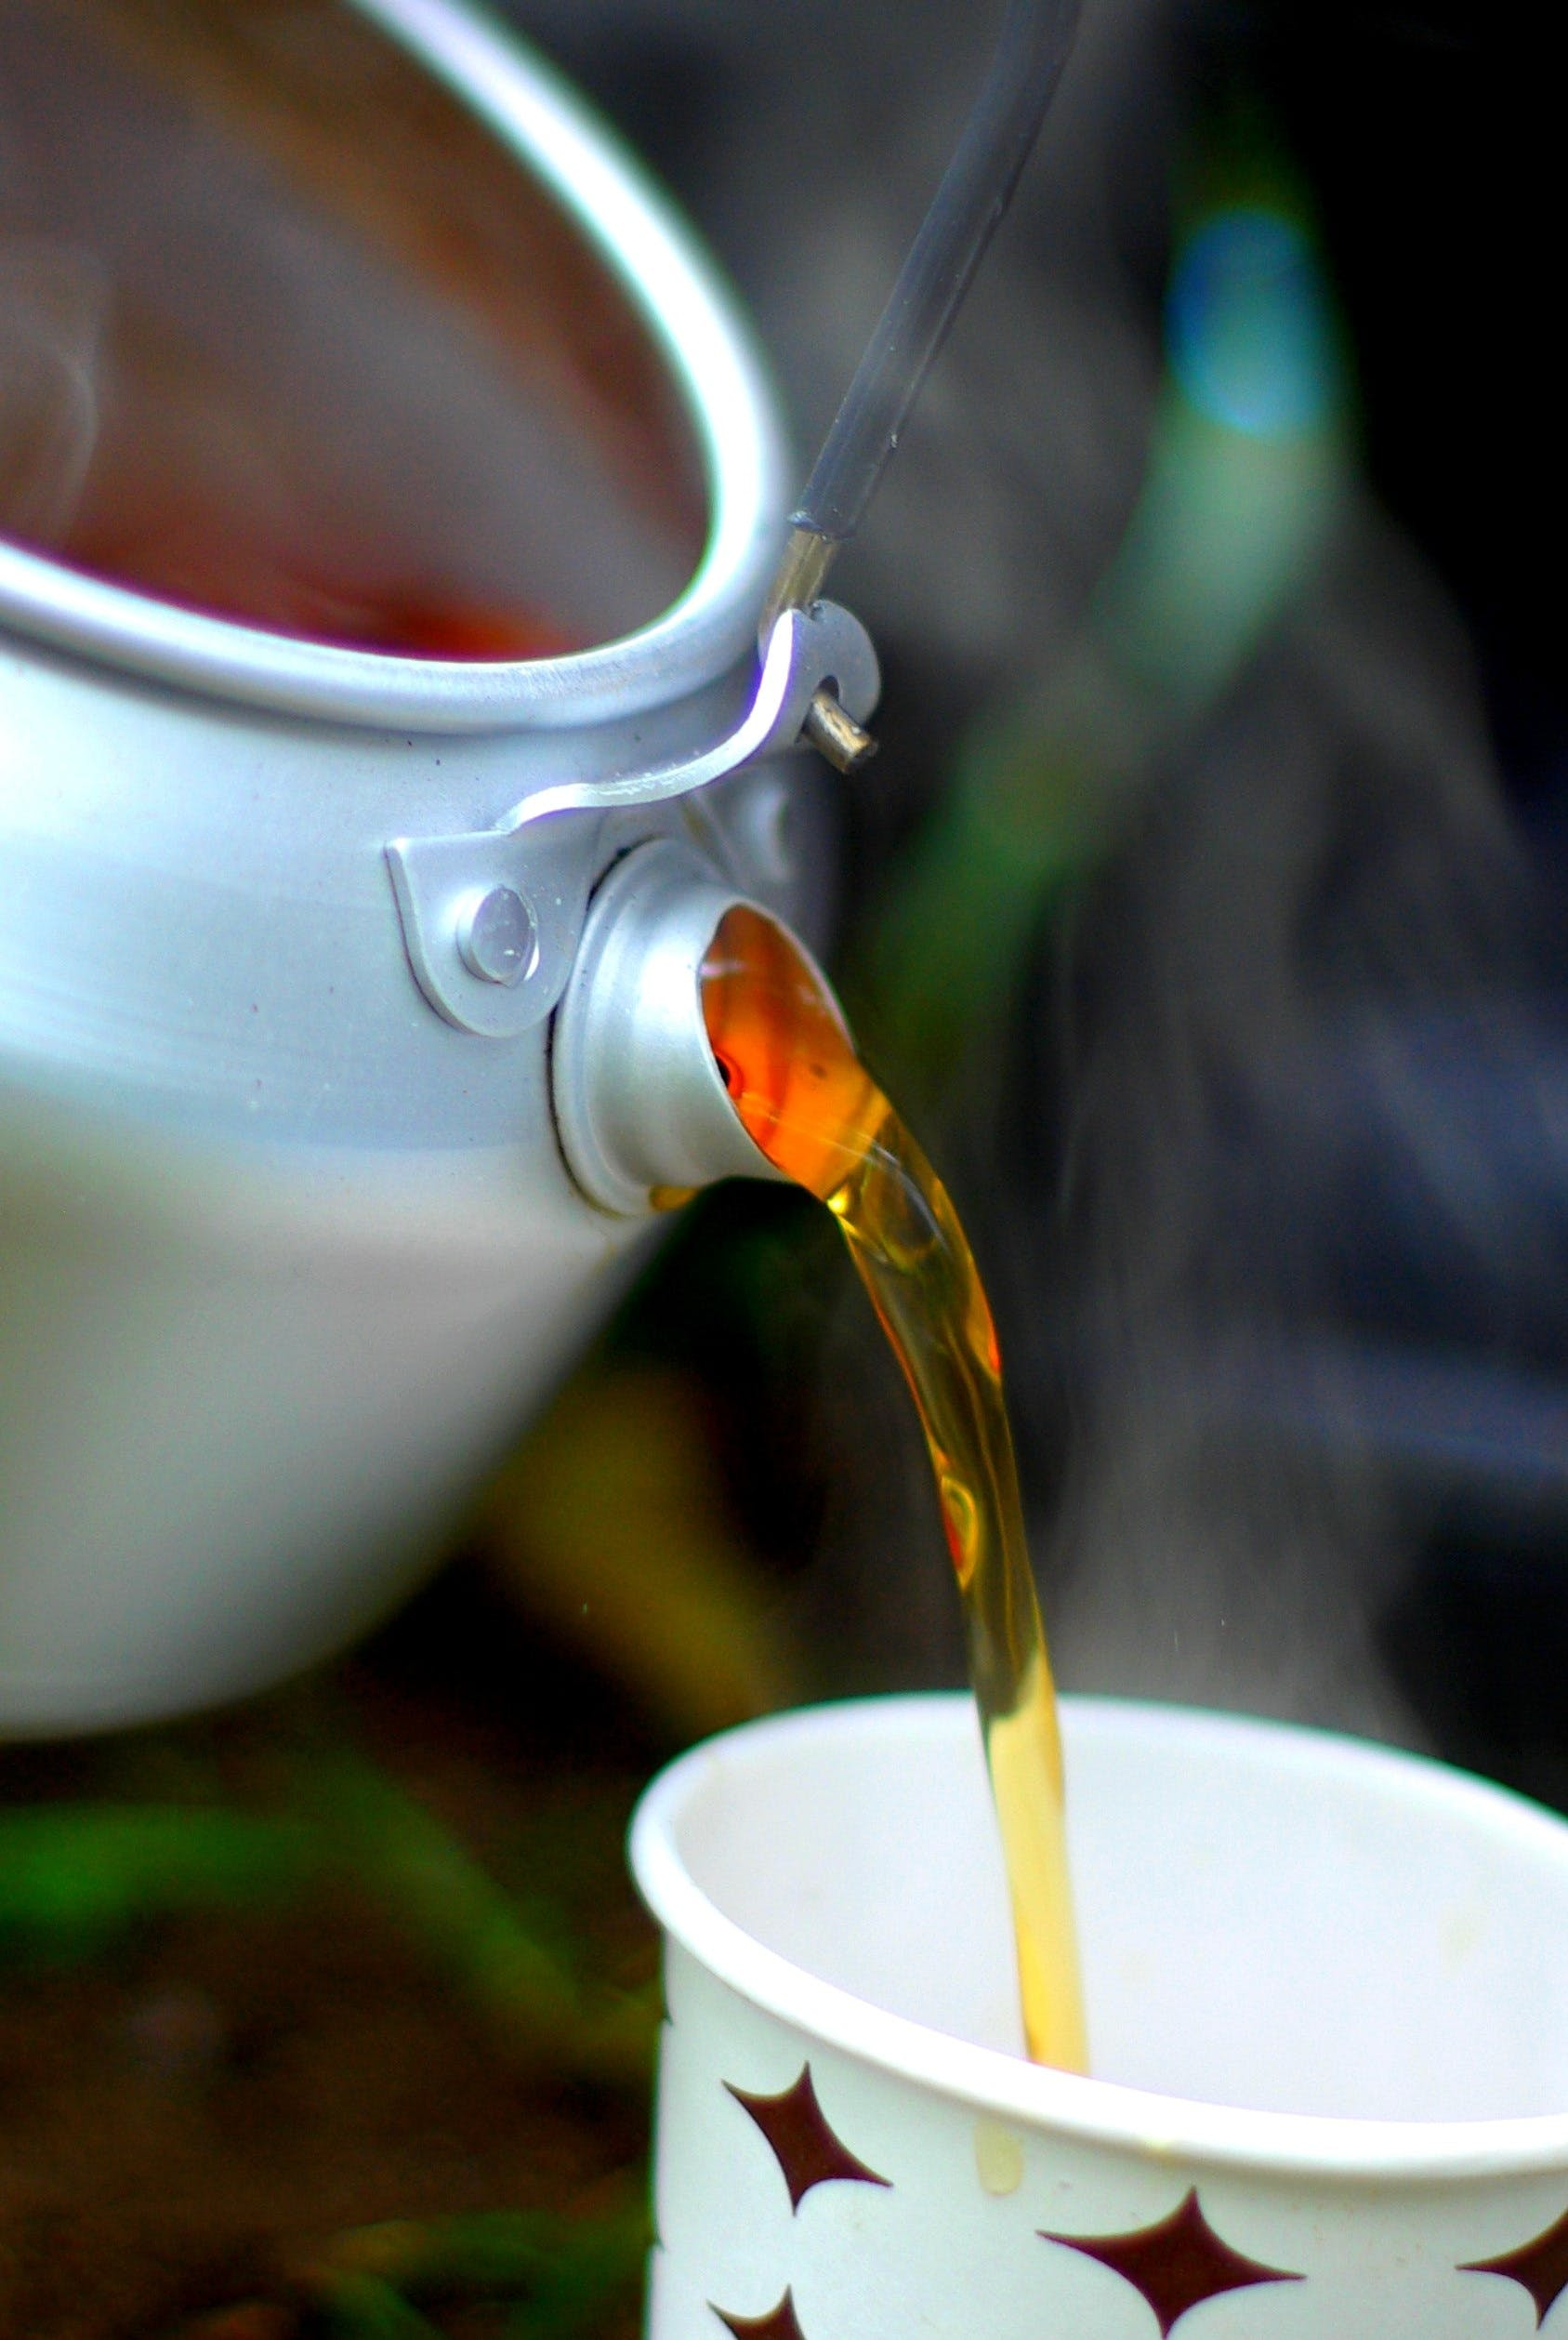 Selective Focus Photography of Teapot Pouring on White Mug